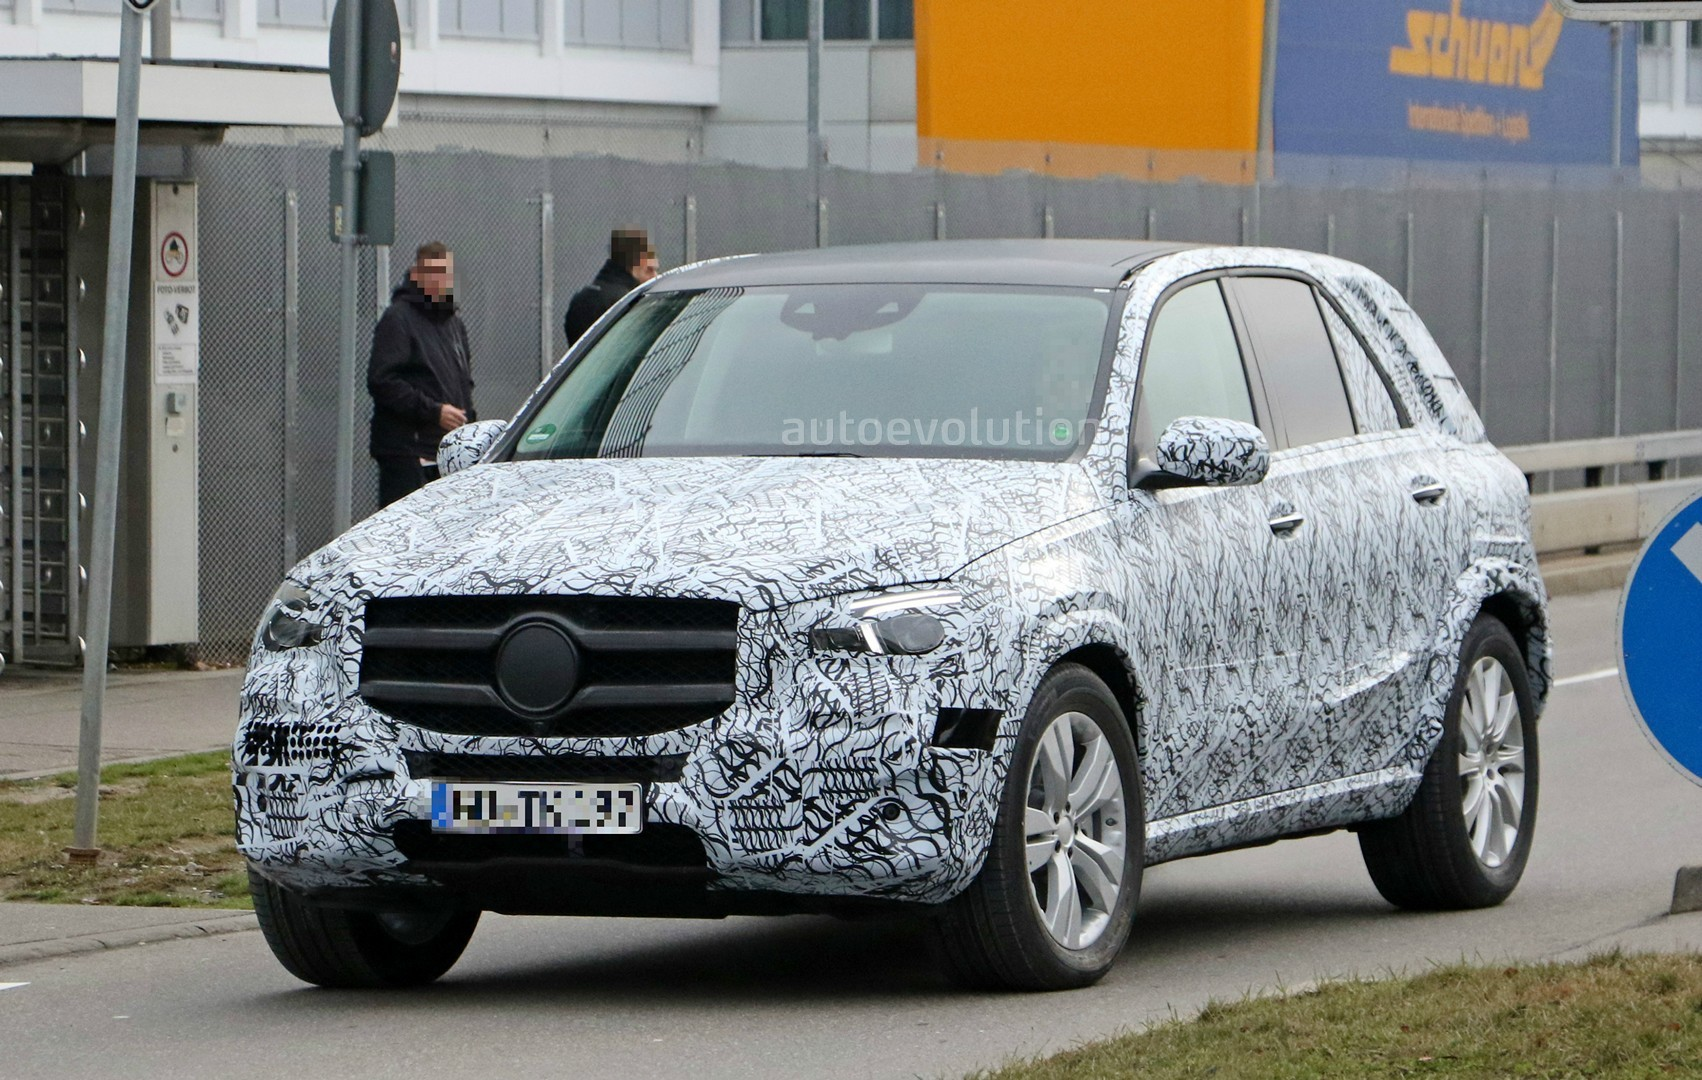 2019 mercedes benz gle interior shows mbux interface for Mercedes benz gle 2019